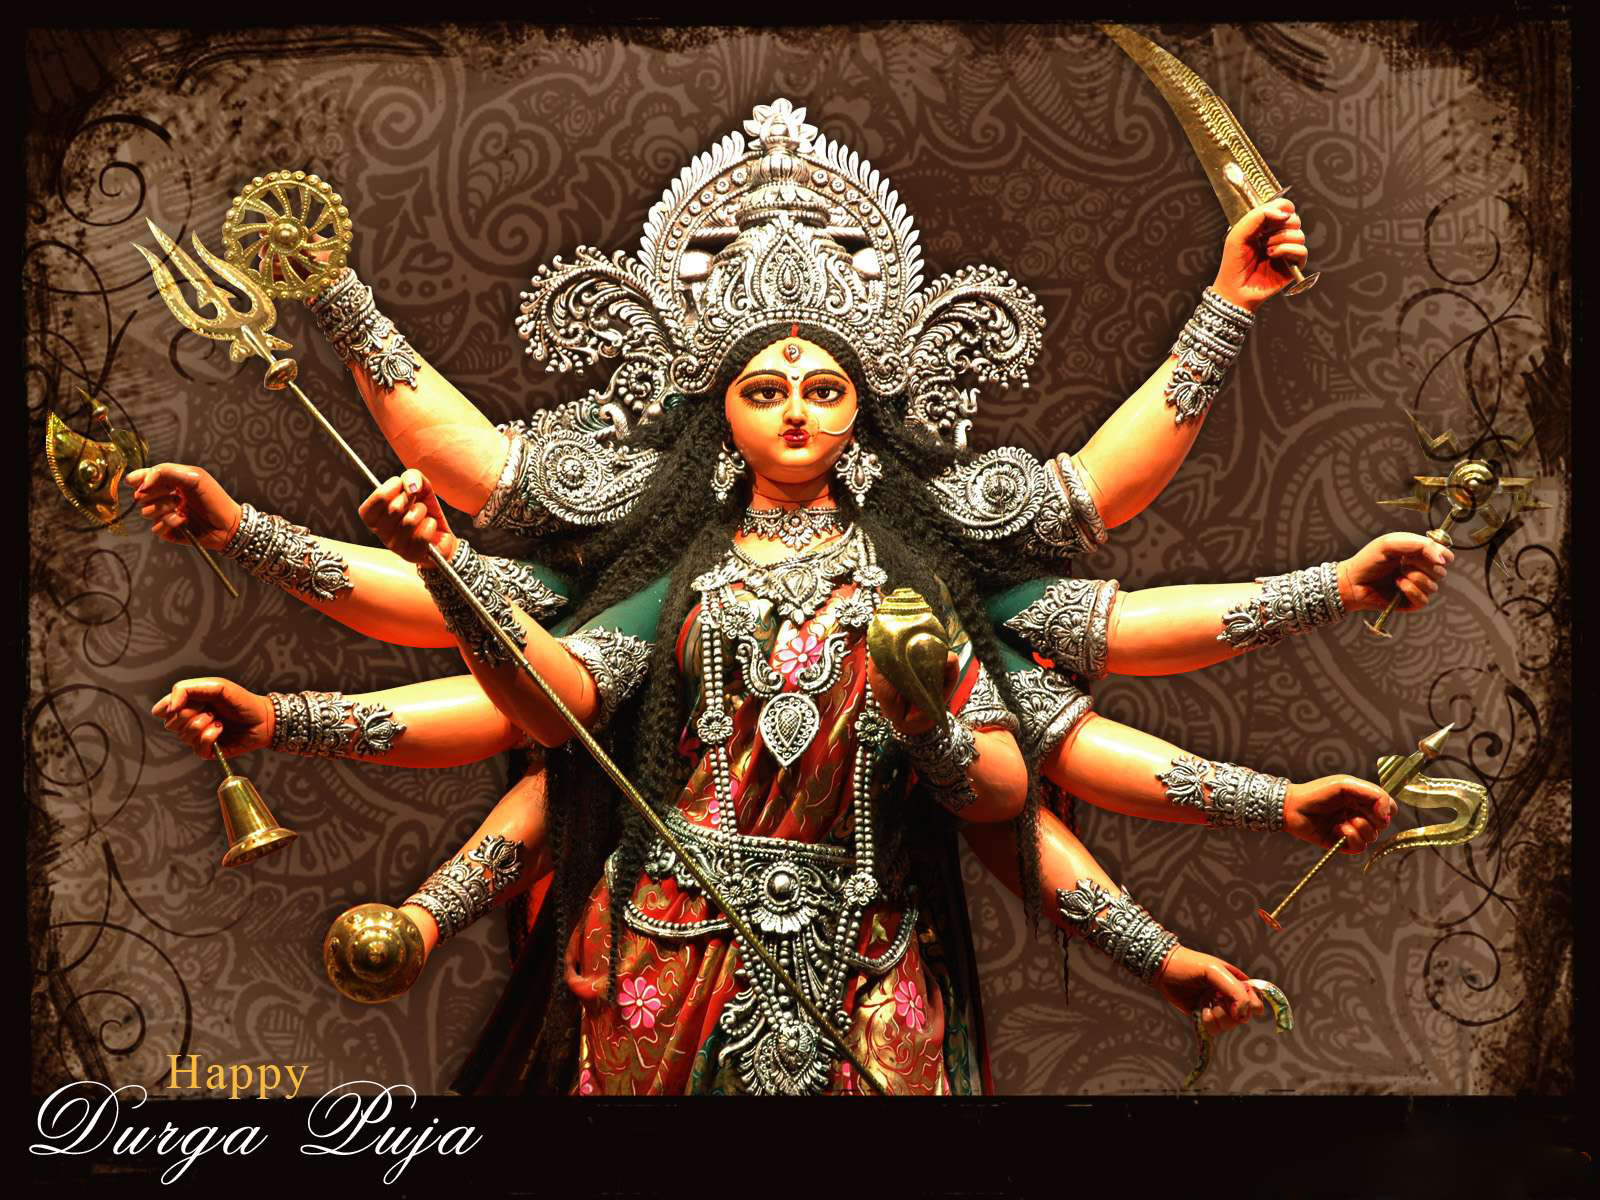 Durga Puja Hd Wallpaper: Diwali Greetings: Durga Puja Wallpaper